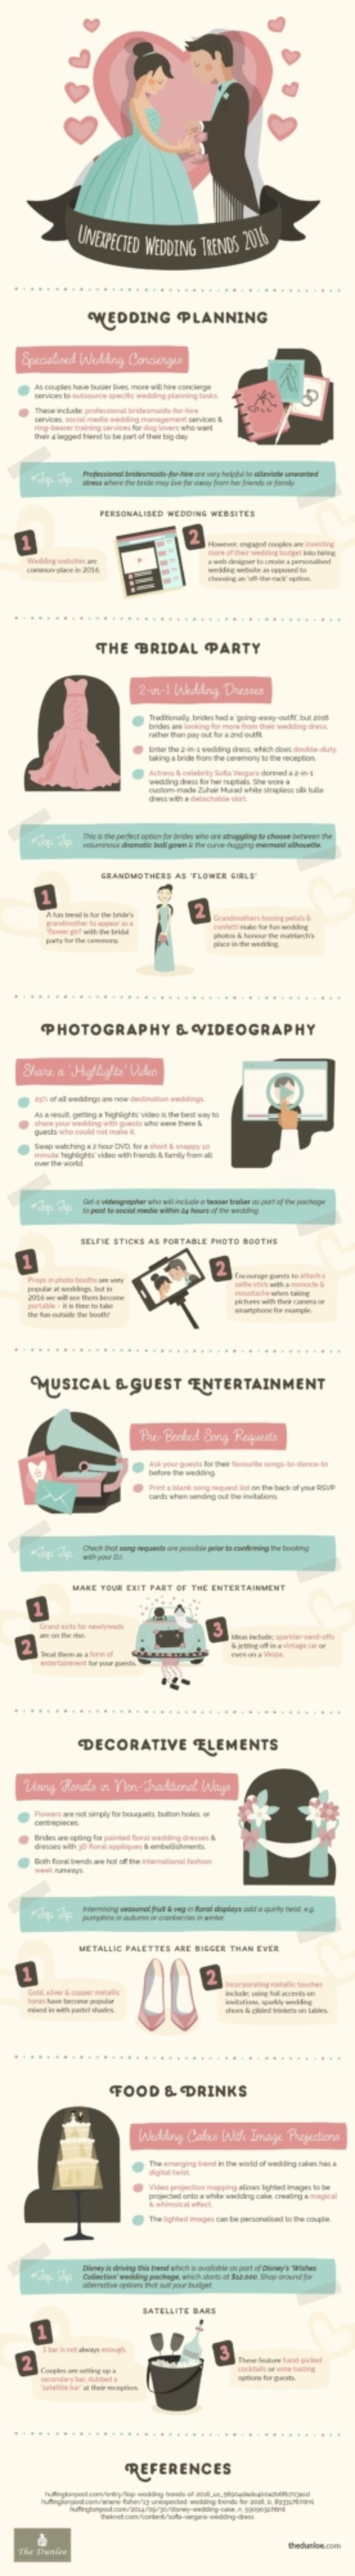 Unexpected Wedding Trends 2016 Infographic